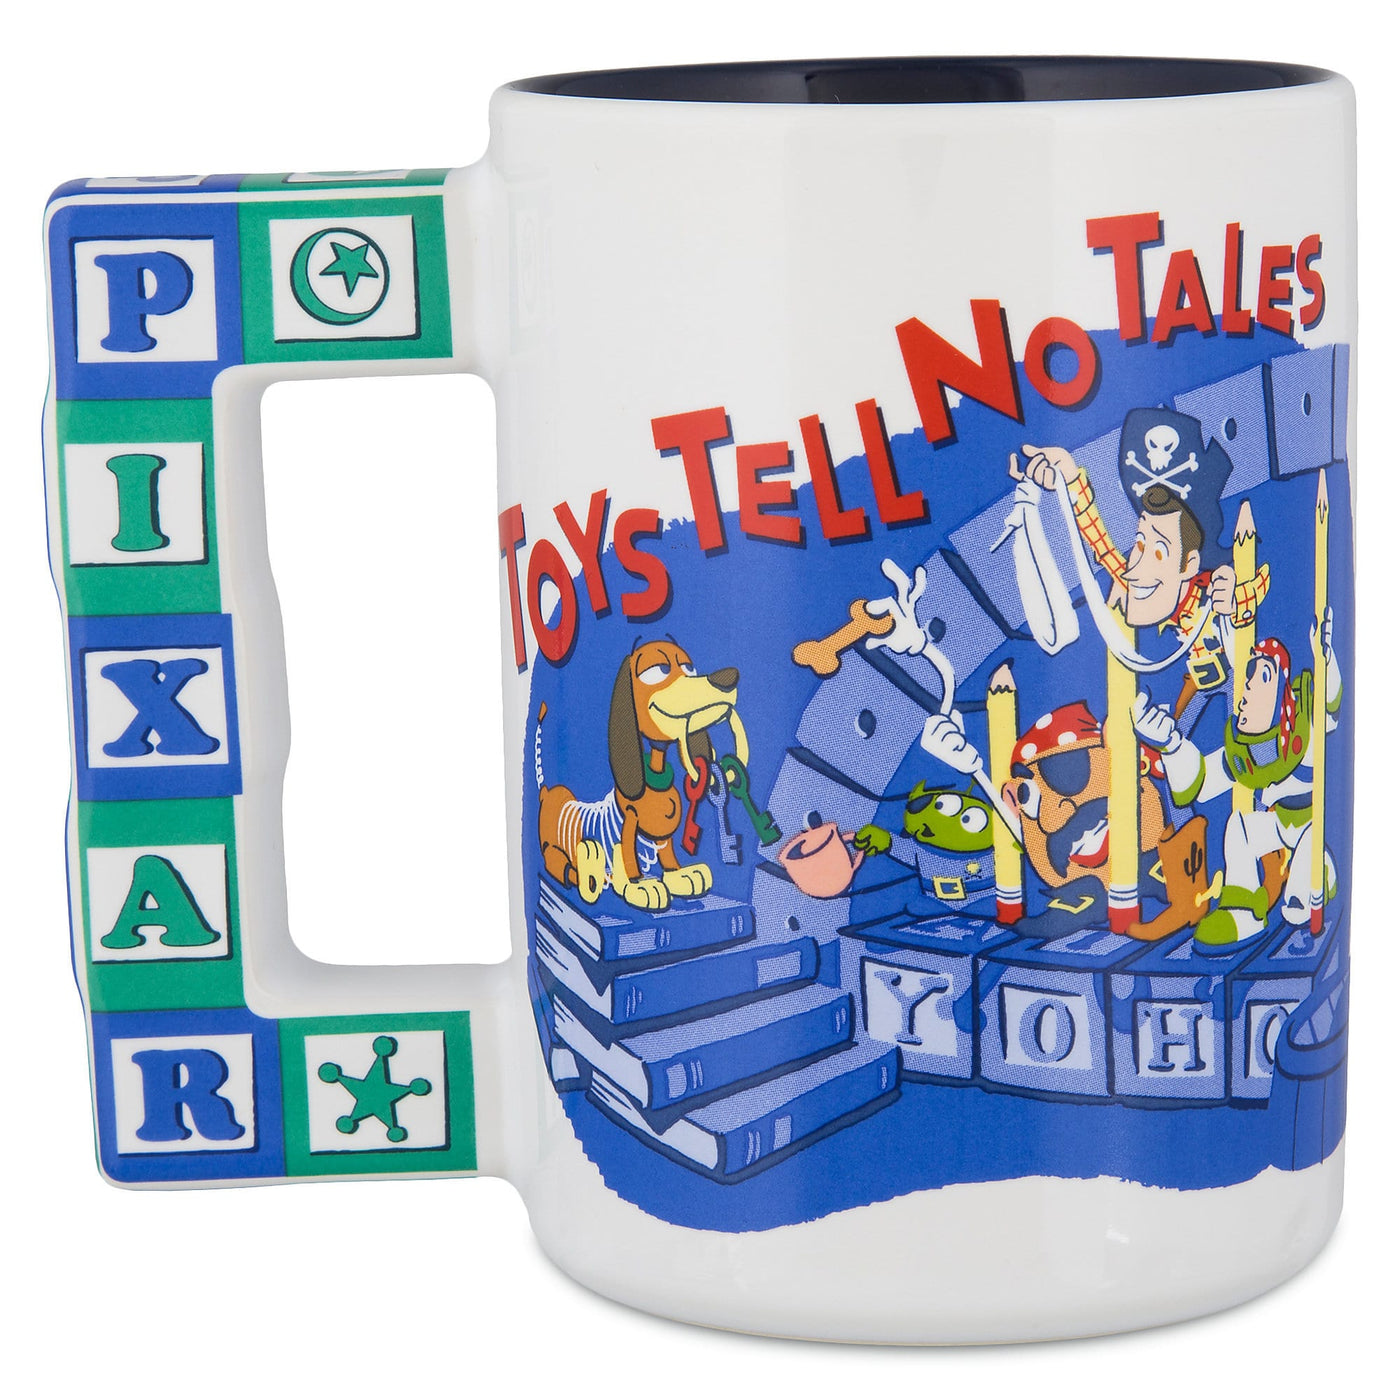 Parks Haunted Will Disney A Ghosts Follow Mansion You Toy Story Home Mug New 8n0wOPk